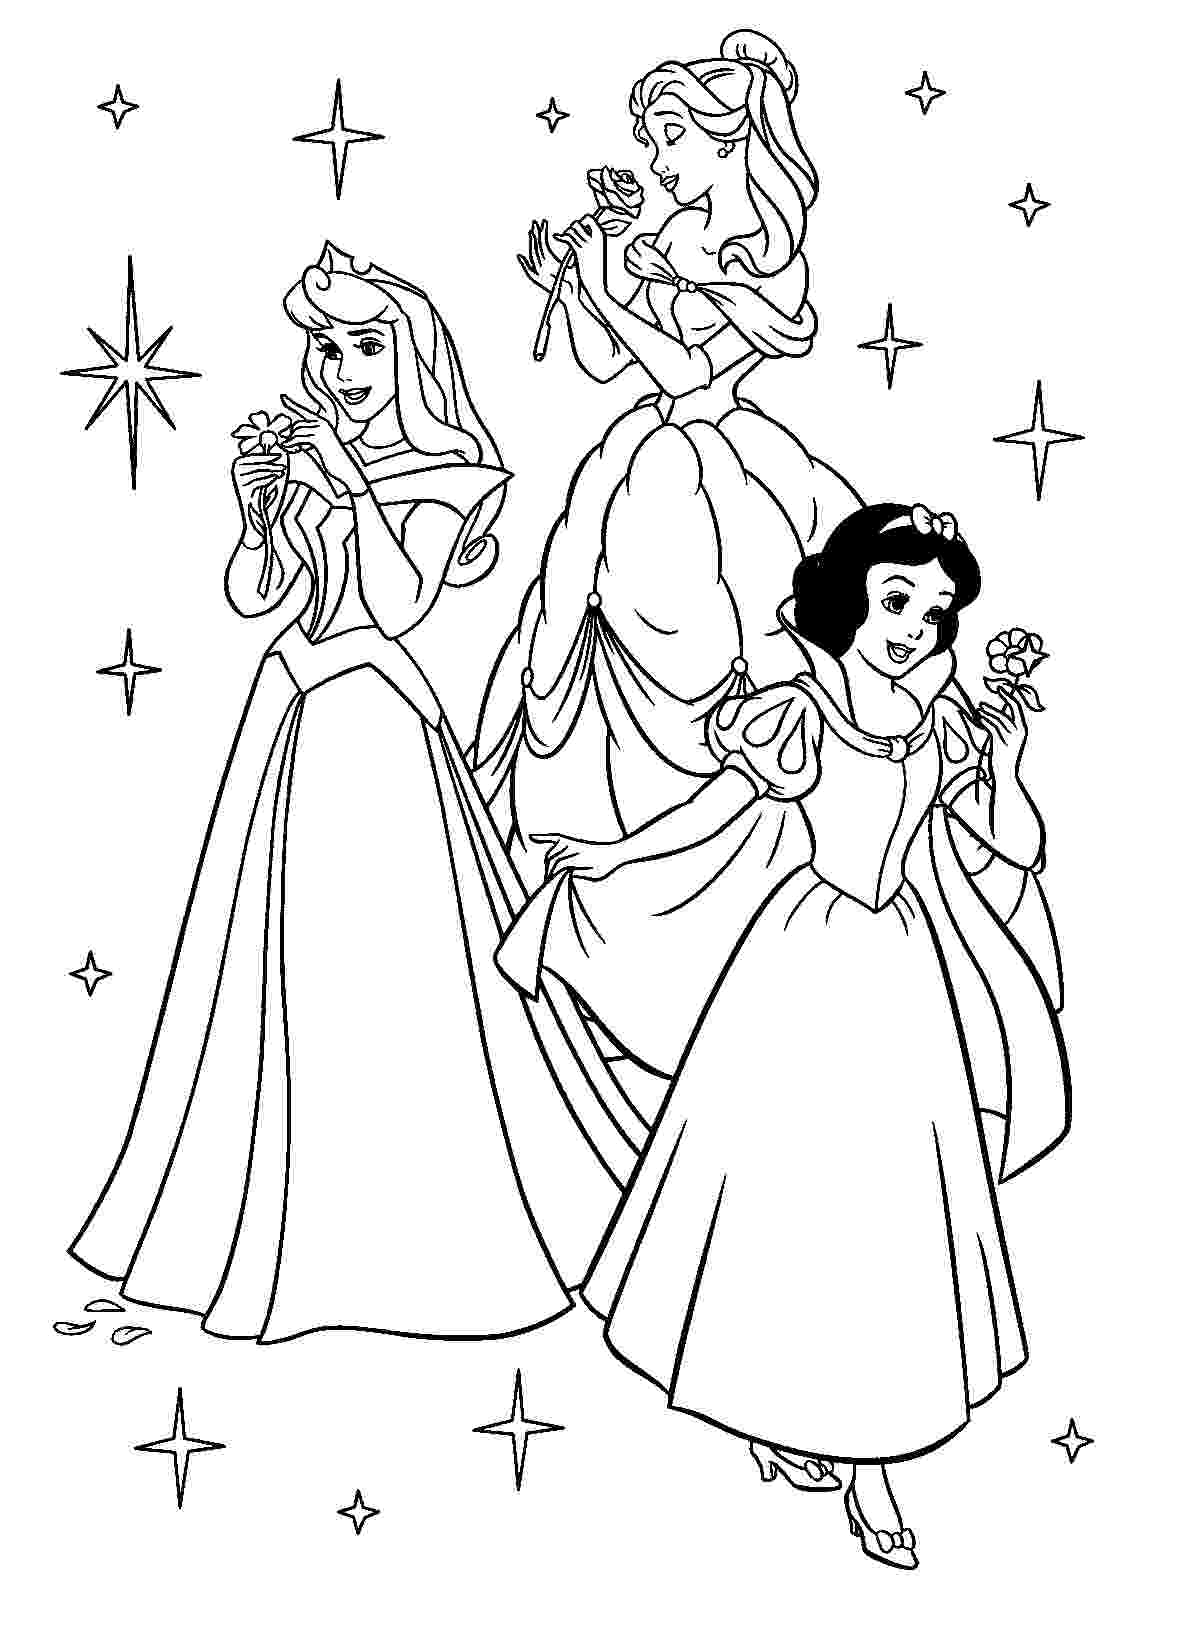 free disney princess coloring pages disney princess christmas coloring pages princess pages free coloring disney